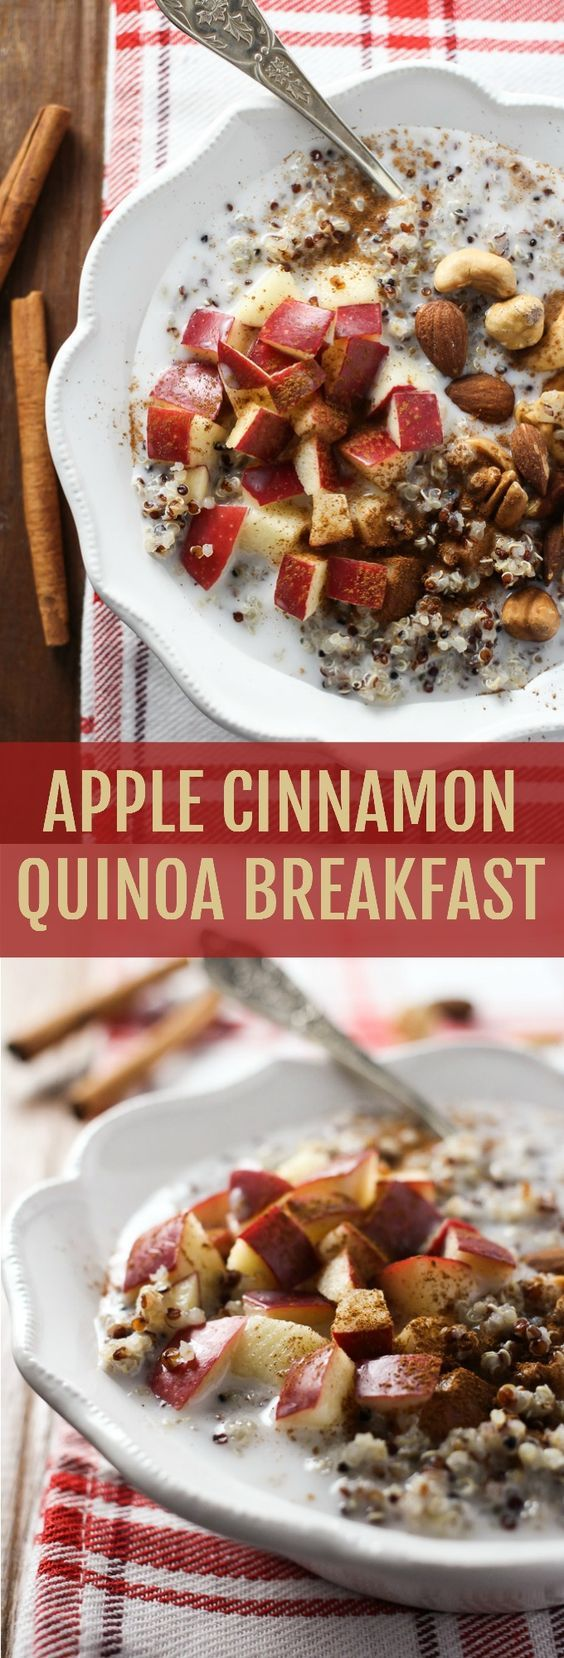 This Apple Cinnamon Quinoa Breakfast is very easy to put together. It's filling and full of plant protein fiber healthy fat vitamins and nutrients.